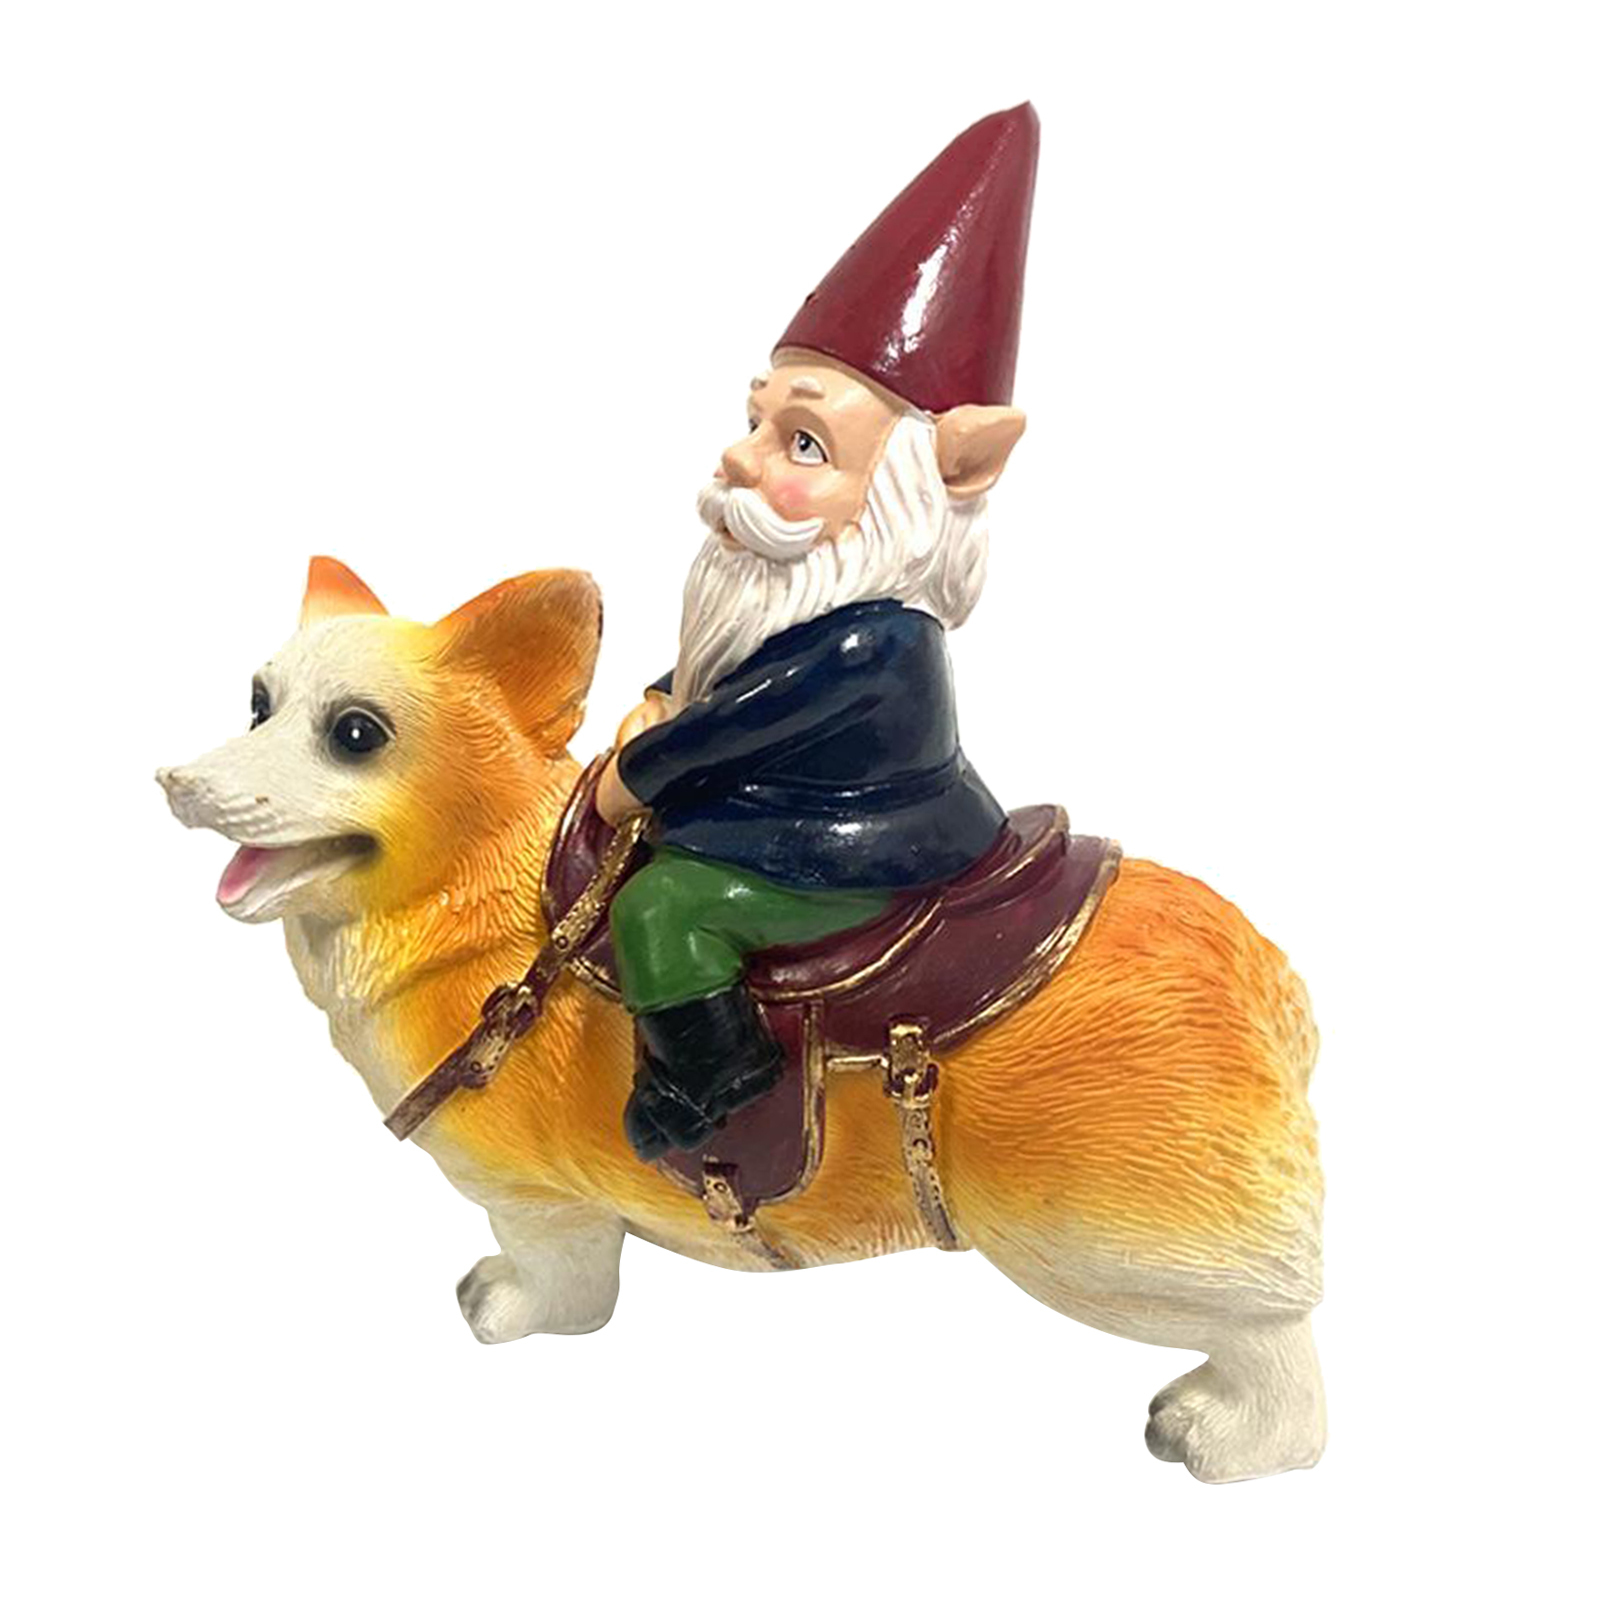 thumbnail 30 - Funny Garden Gnome Statue Figurines Christmas Dress Up DIY for Indoor Outdoor